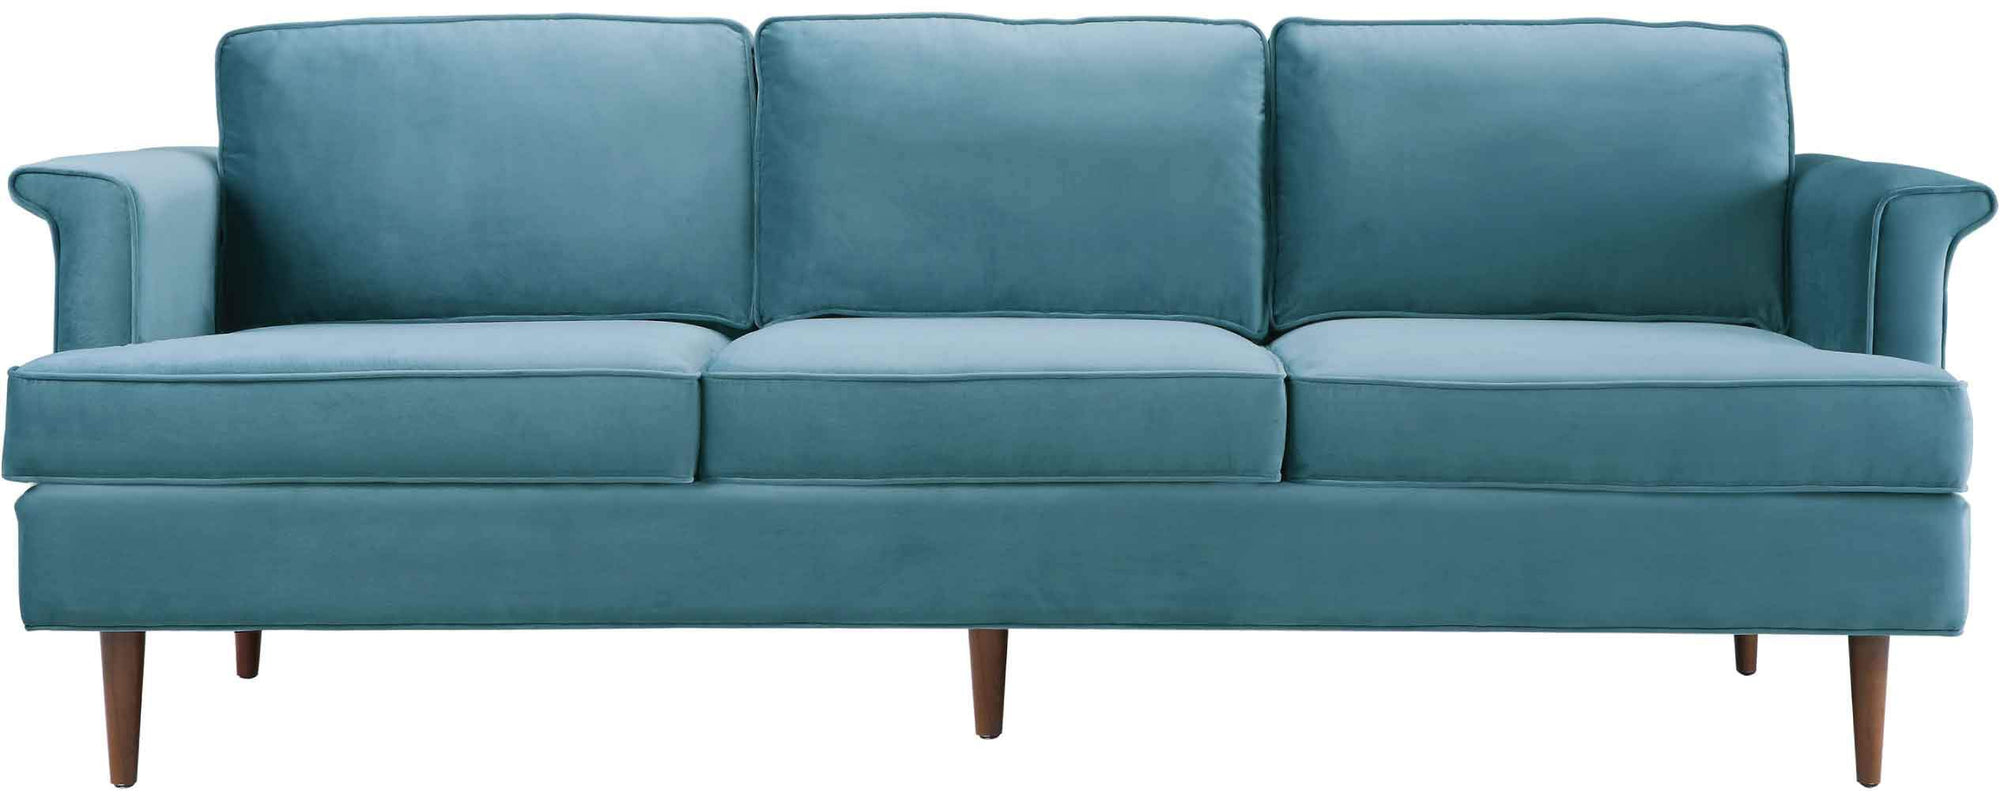 Couches Up to 40% Off